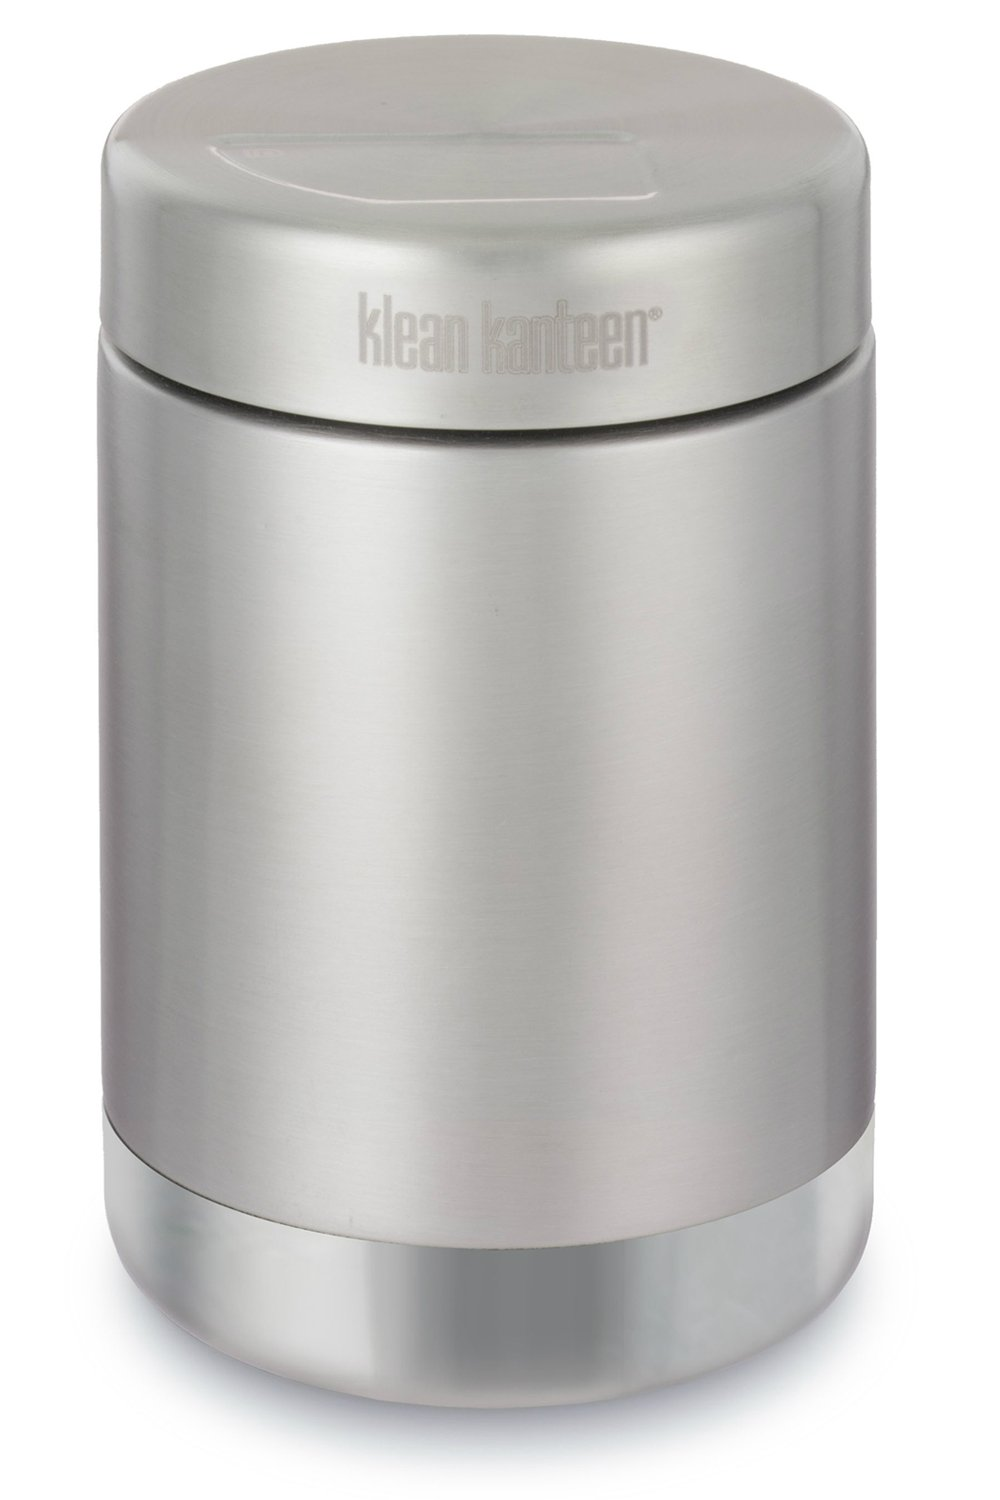 Klean Kanteen Double Wall Vacuum Insulated Stainless Steel Food Canister Container with Leak Proof Lid K8CANSSF-BS-Parent